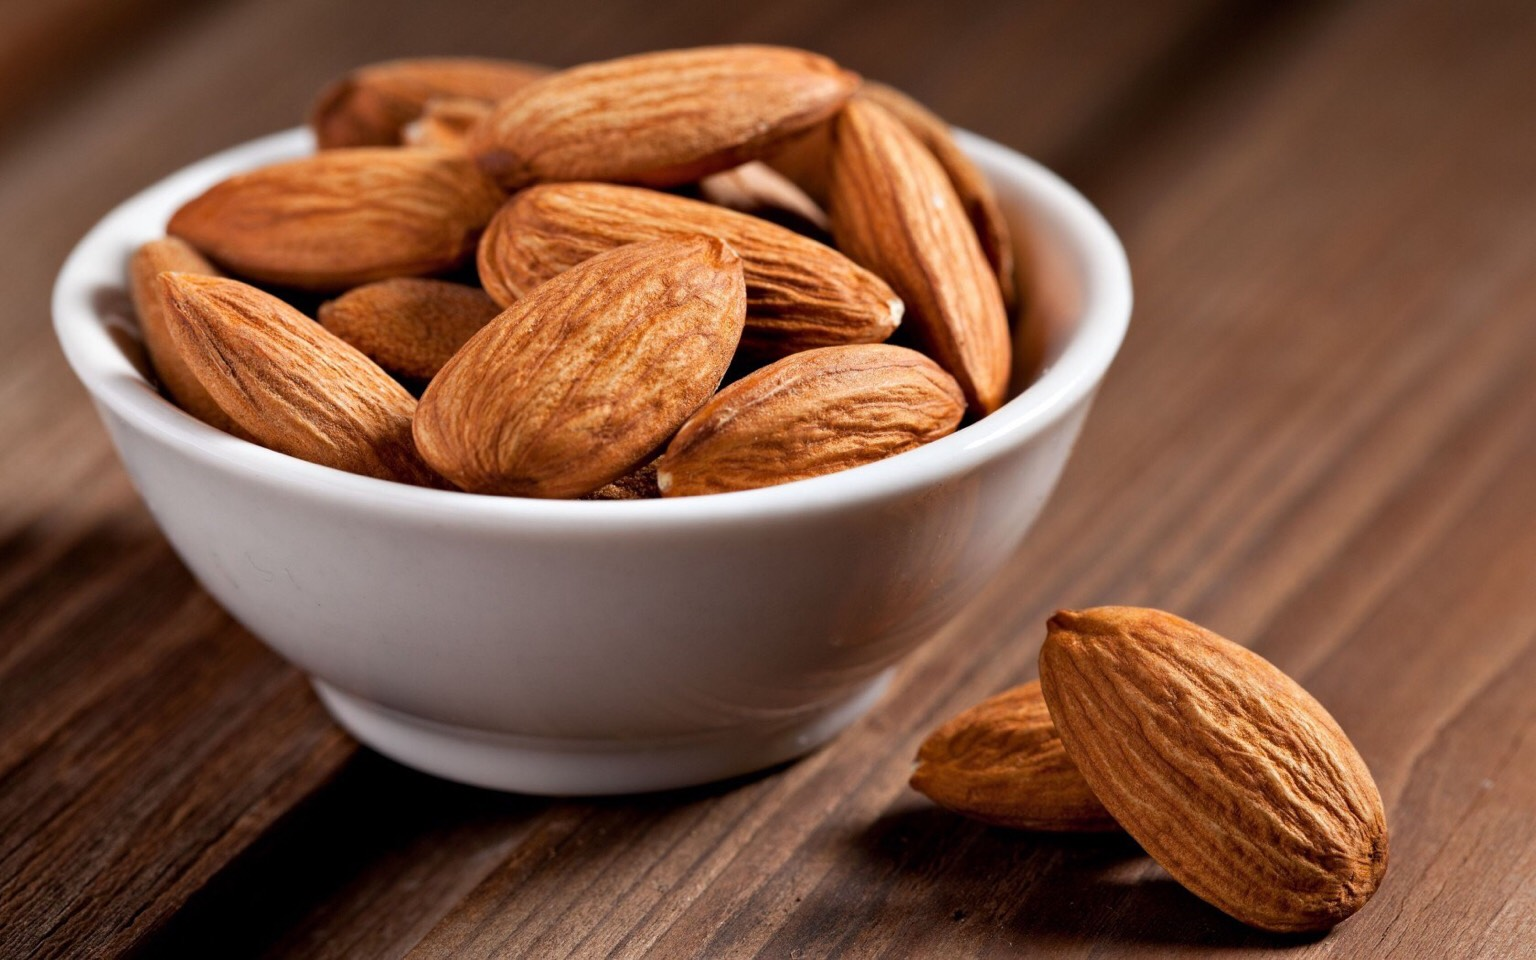 Almonds are rich in magnesium, a mineral needed for quality sleep.